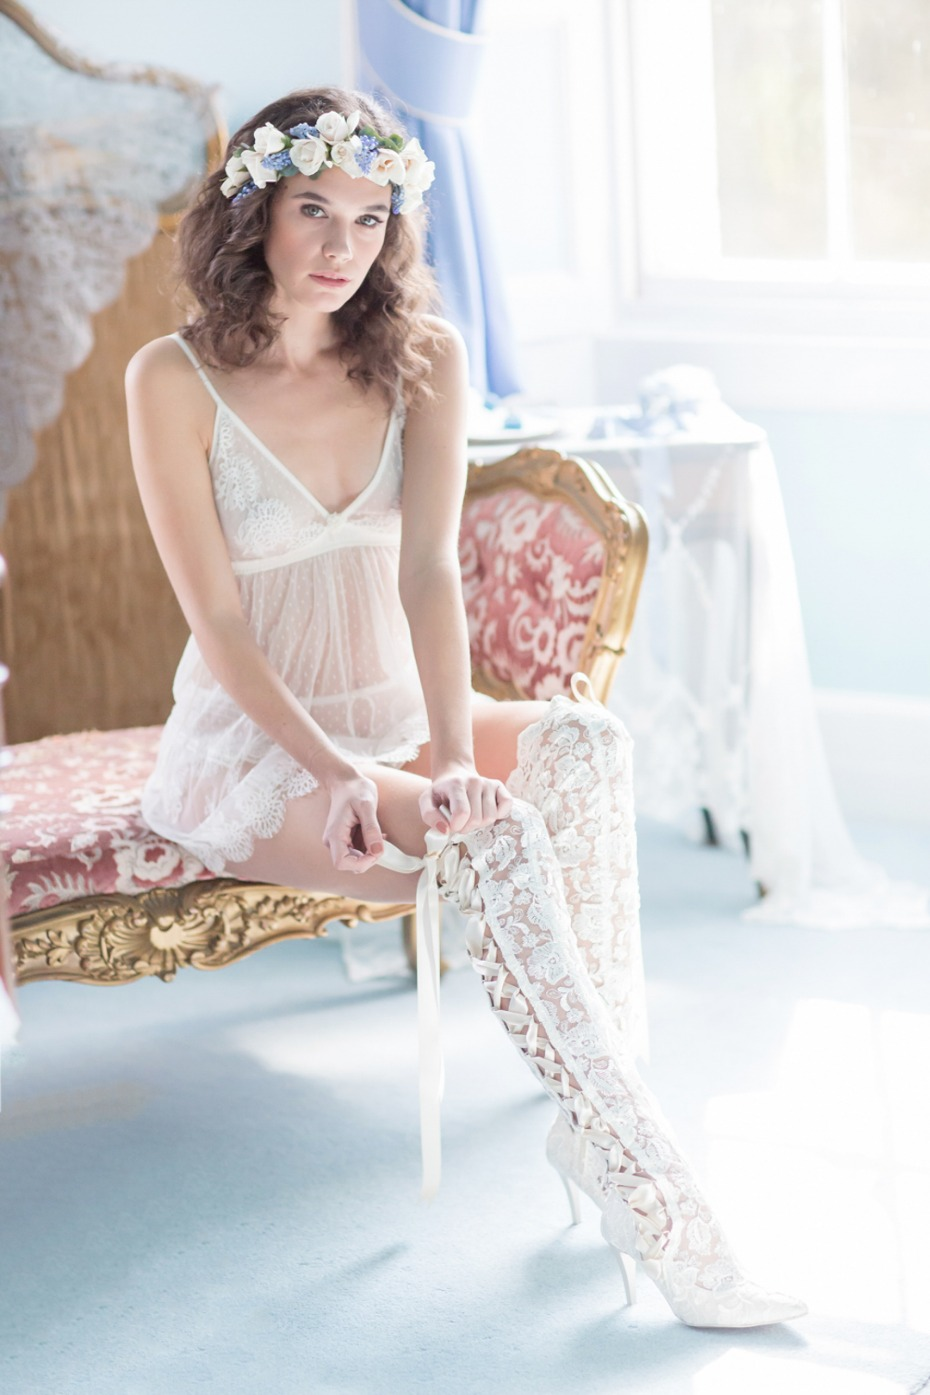 Boudoir session inspired by Sense and Sensibility